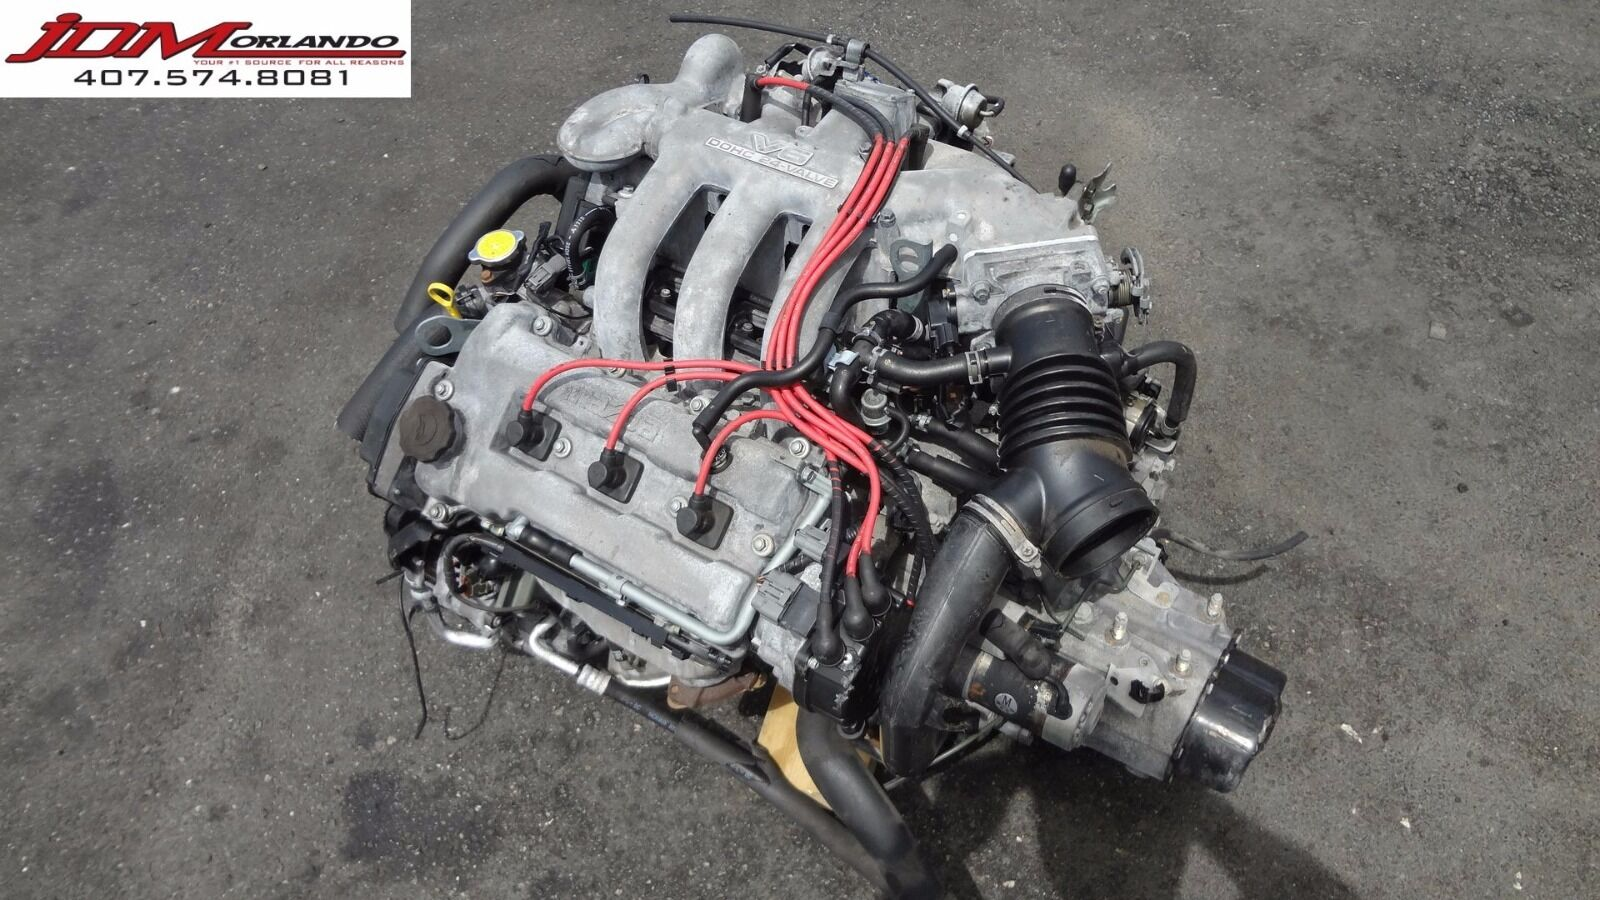 91 98 Mazda Mx 3 Eunos 500 18l Dohc V6 Engine 5 Speed Diagram 1 Of 8only Available